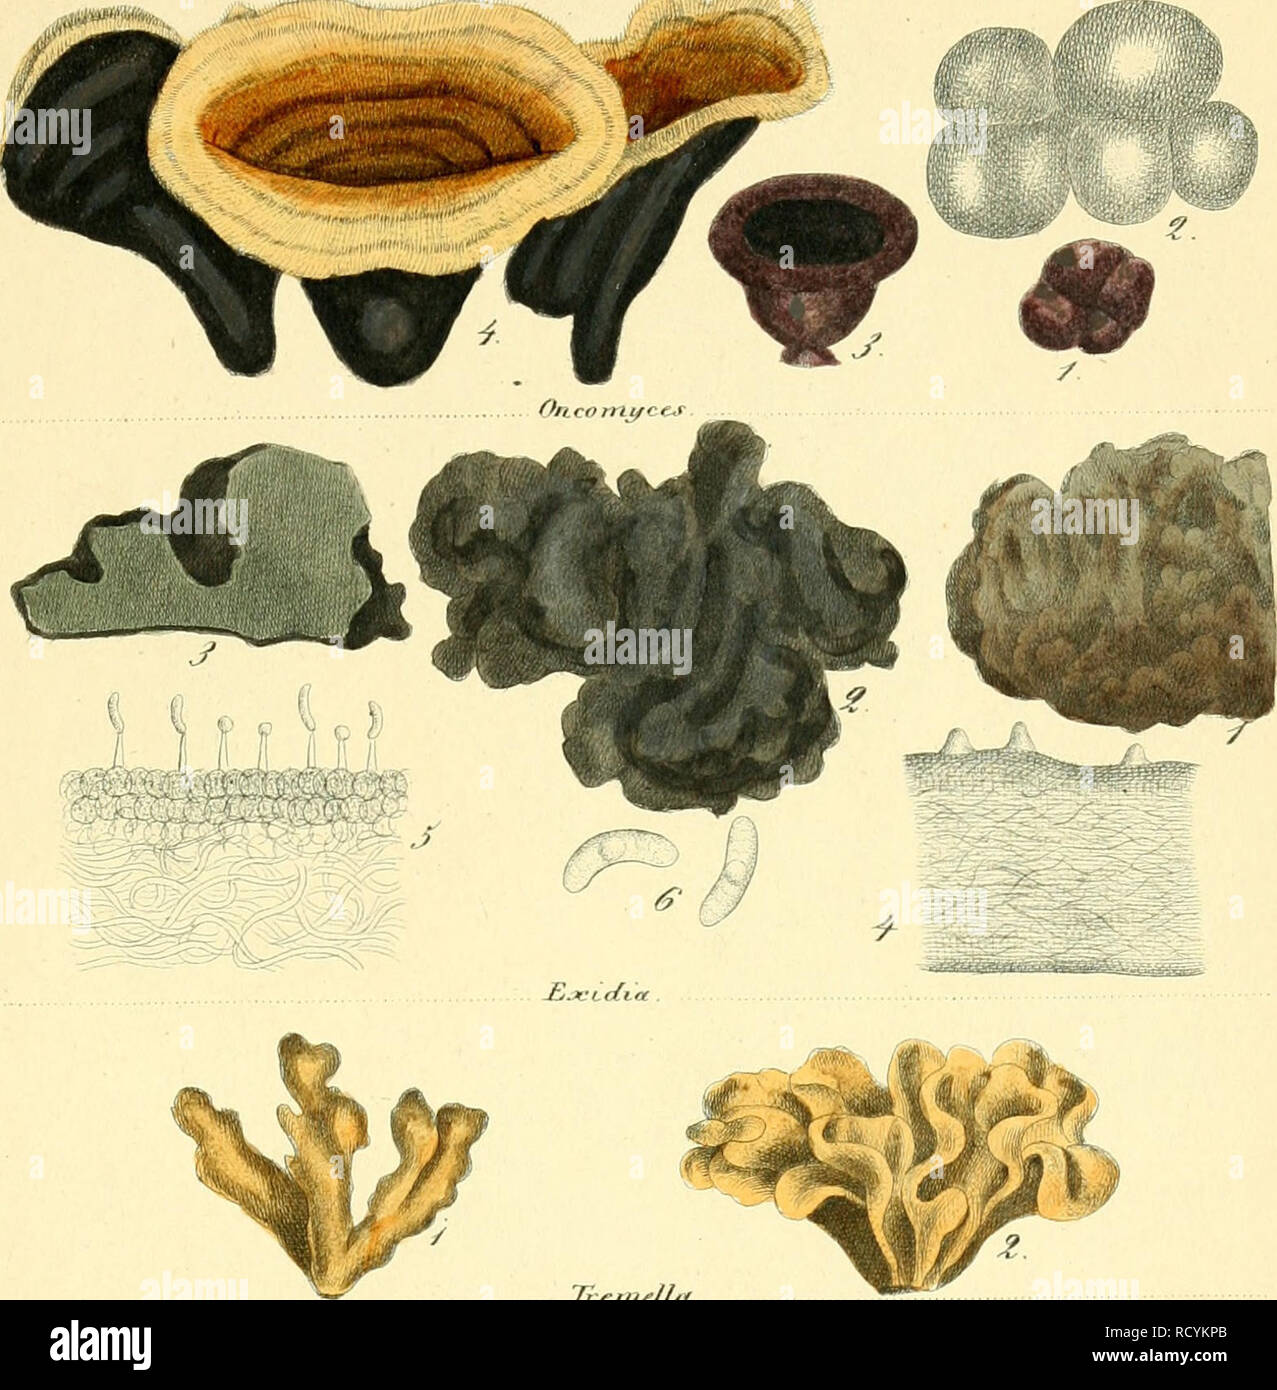 . Das System der Pilze. Durch Beschreibungen und Abbildungen erlutert. Fungi; genealogy. TahXI TfymeiLoinvxetesIlxosporae IfonosponcCei Tremeflei. Tieinella l^TiienouLjcetesExDsporae. fSpihpoi-itloi l)n(TTnvTotos. Please note that these images are extracted from scanned page images that may have been digitally enhanced for readability - coloration and appearance of these illustrations may not perfectly resemble the original work.. Nees von Esenbeck, Theodor Friedrich Ludwig, 1787-1837; Henry, A. (Aim), 1801-1875; Bail, Theodor, 1833-1922. Bonn, Verlag des Lithographischen Instituts der Rheini - Stock Image